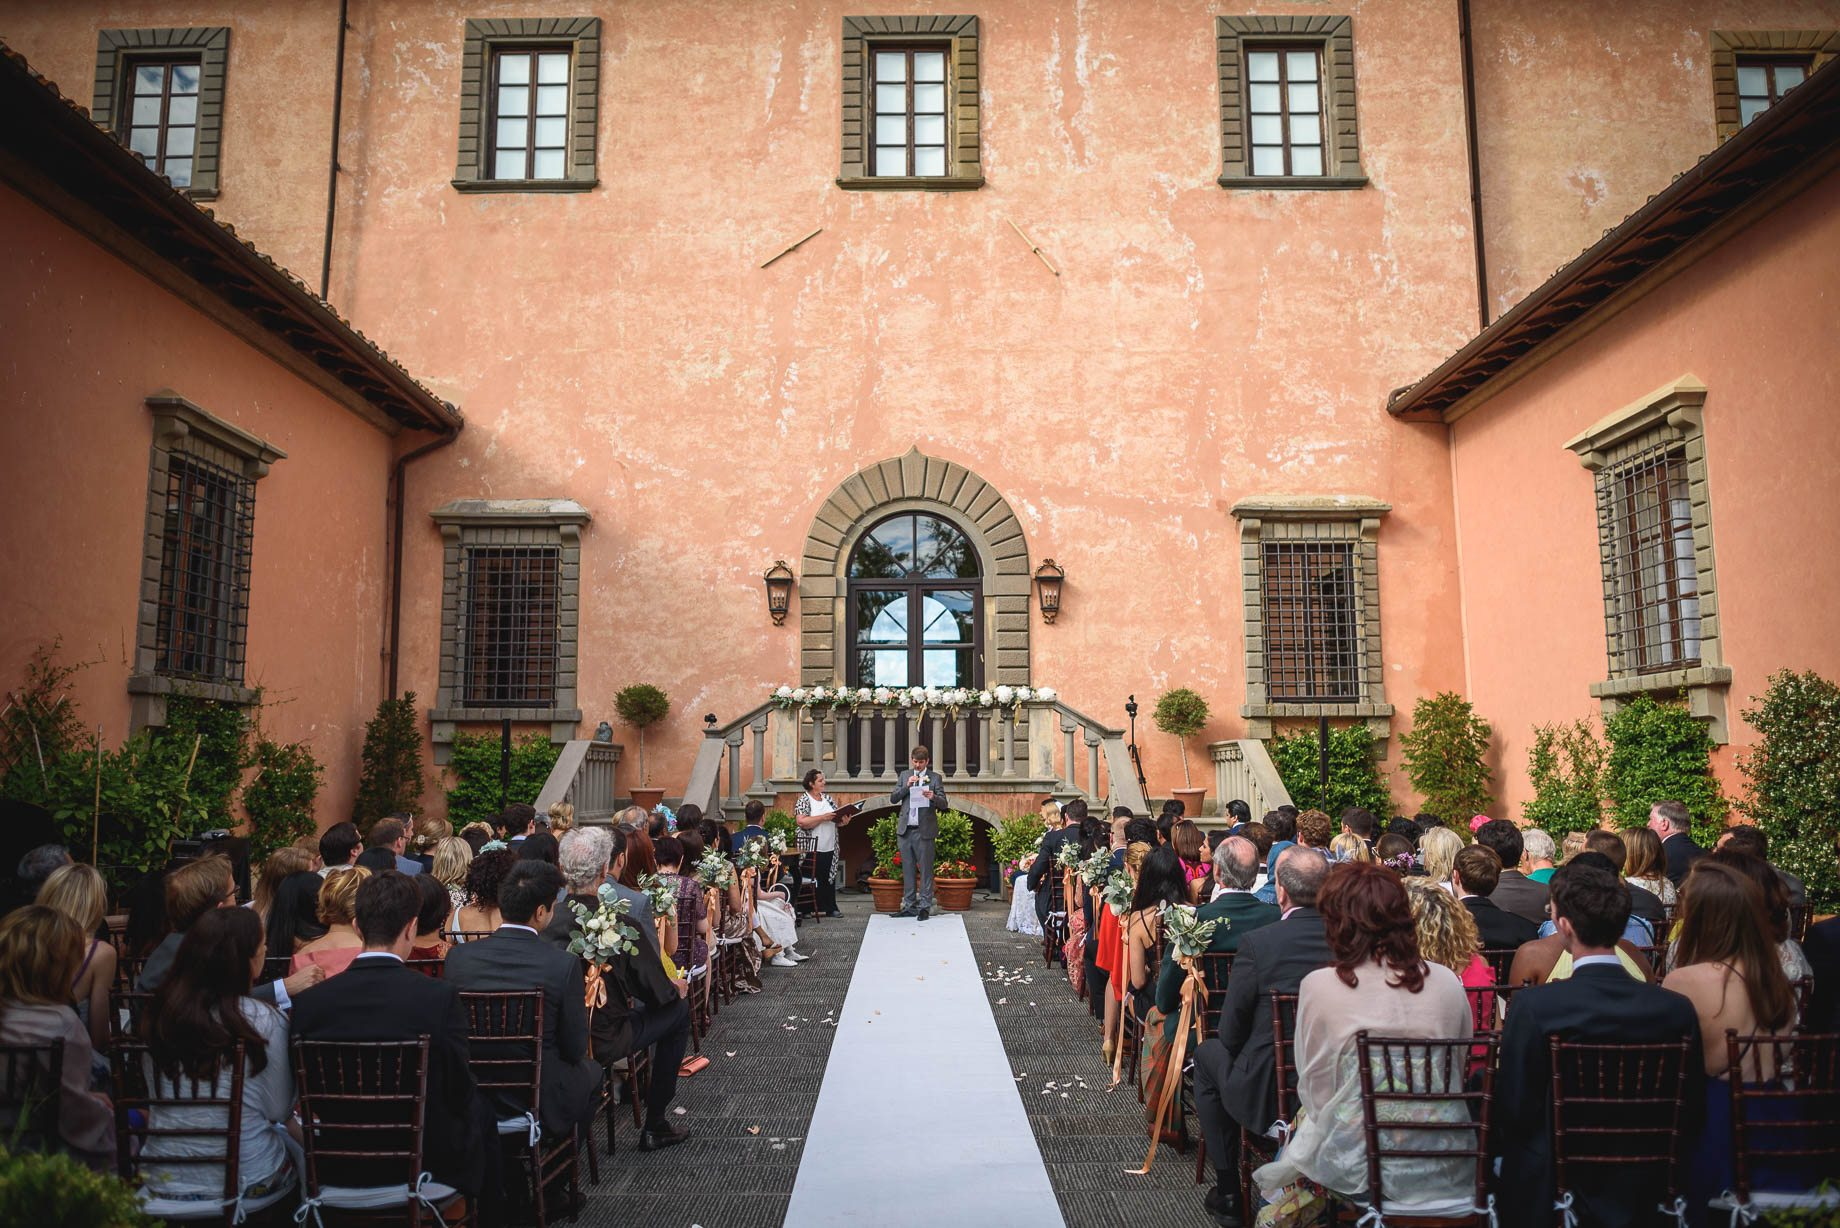 Tuscany wedding photography - Roisin and Moubin - Guy Collier Photography (108 of 251)